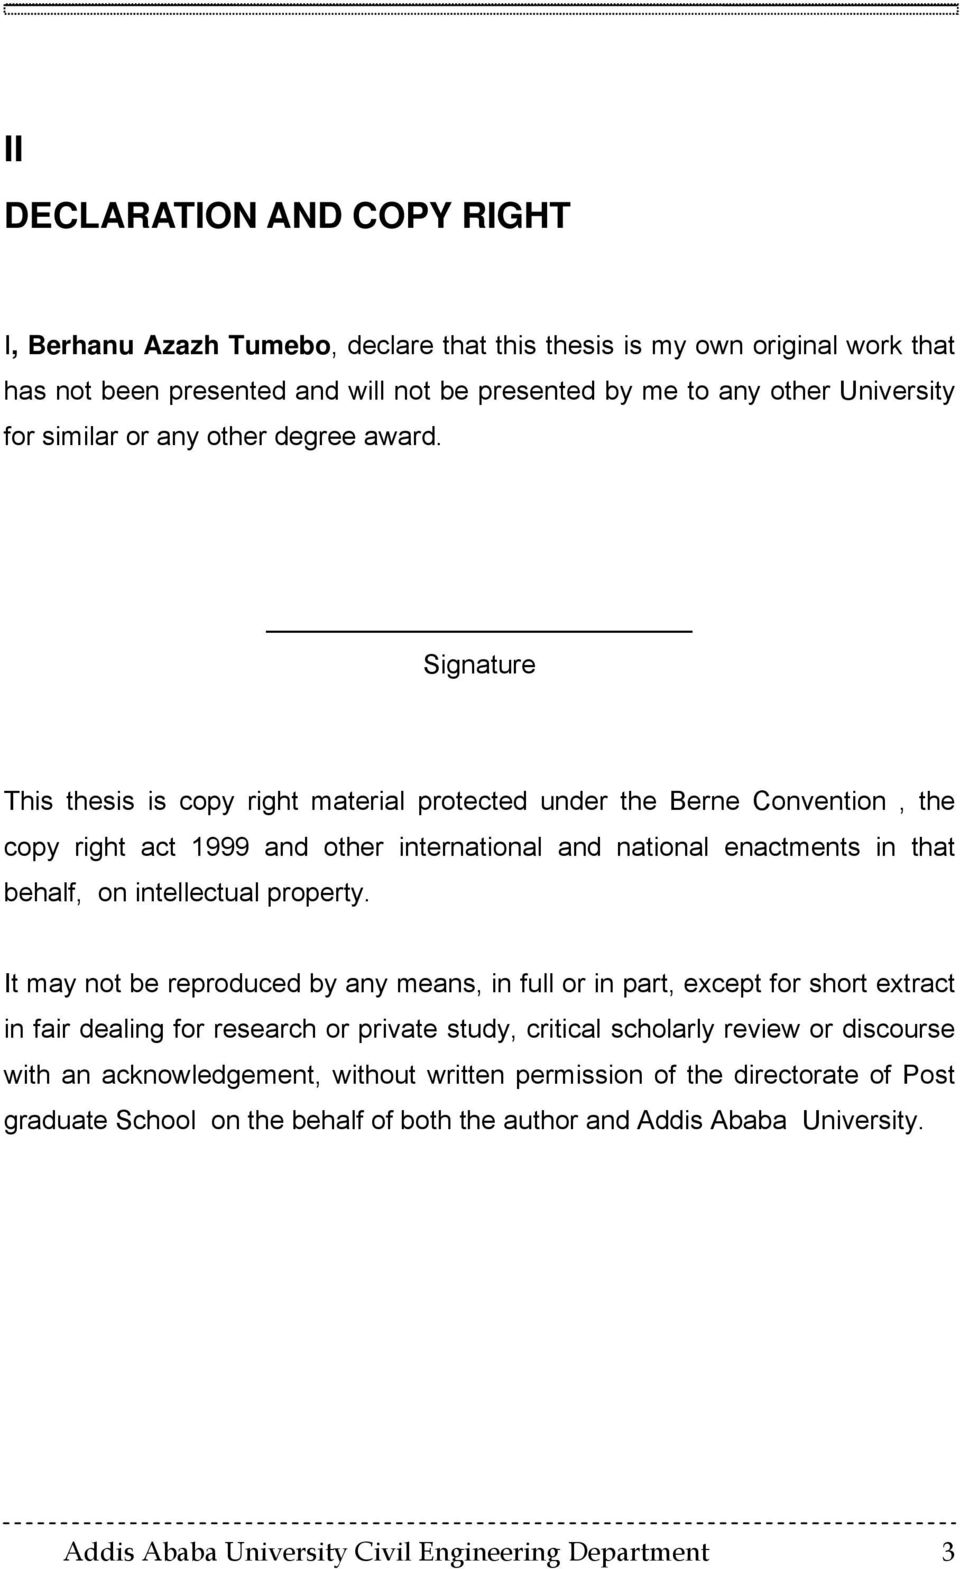 Signature This thesis is copy right material protected under the Berne Convention, the copy right act 1999 and other international and national enactments in that behalf, on intellectual property.